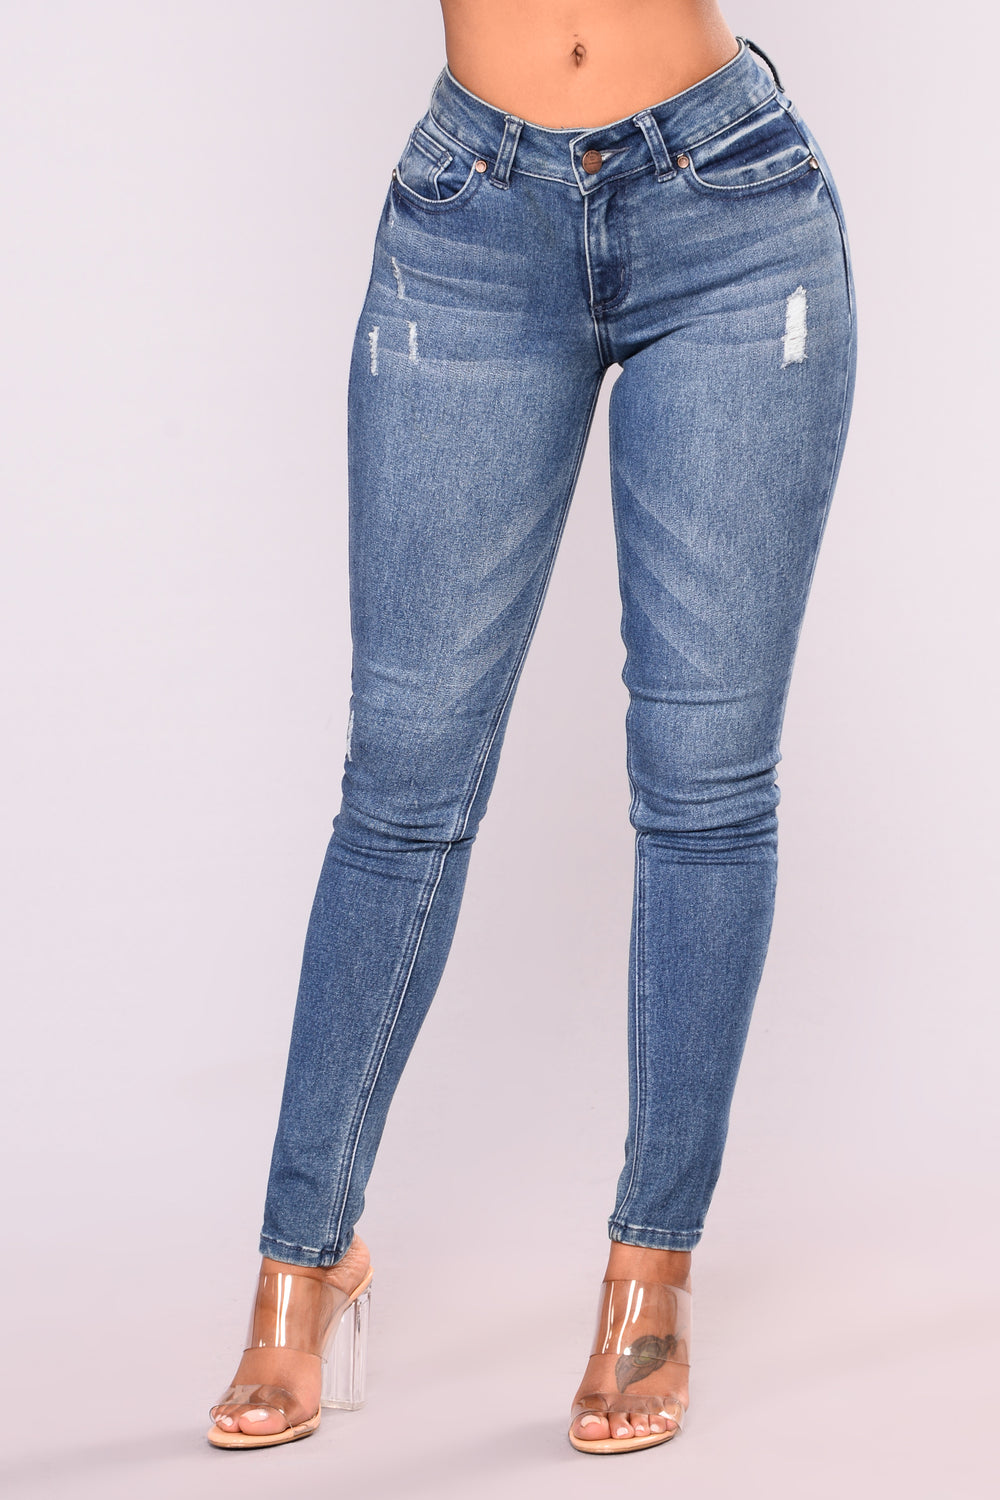 Gin And Tonic Skinny Jeans - Medium Blue Wash